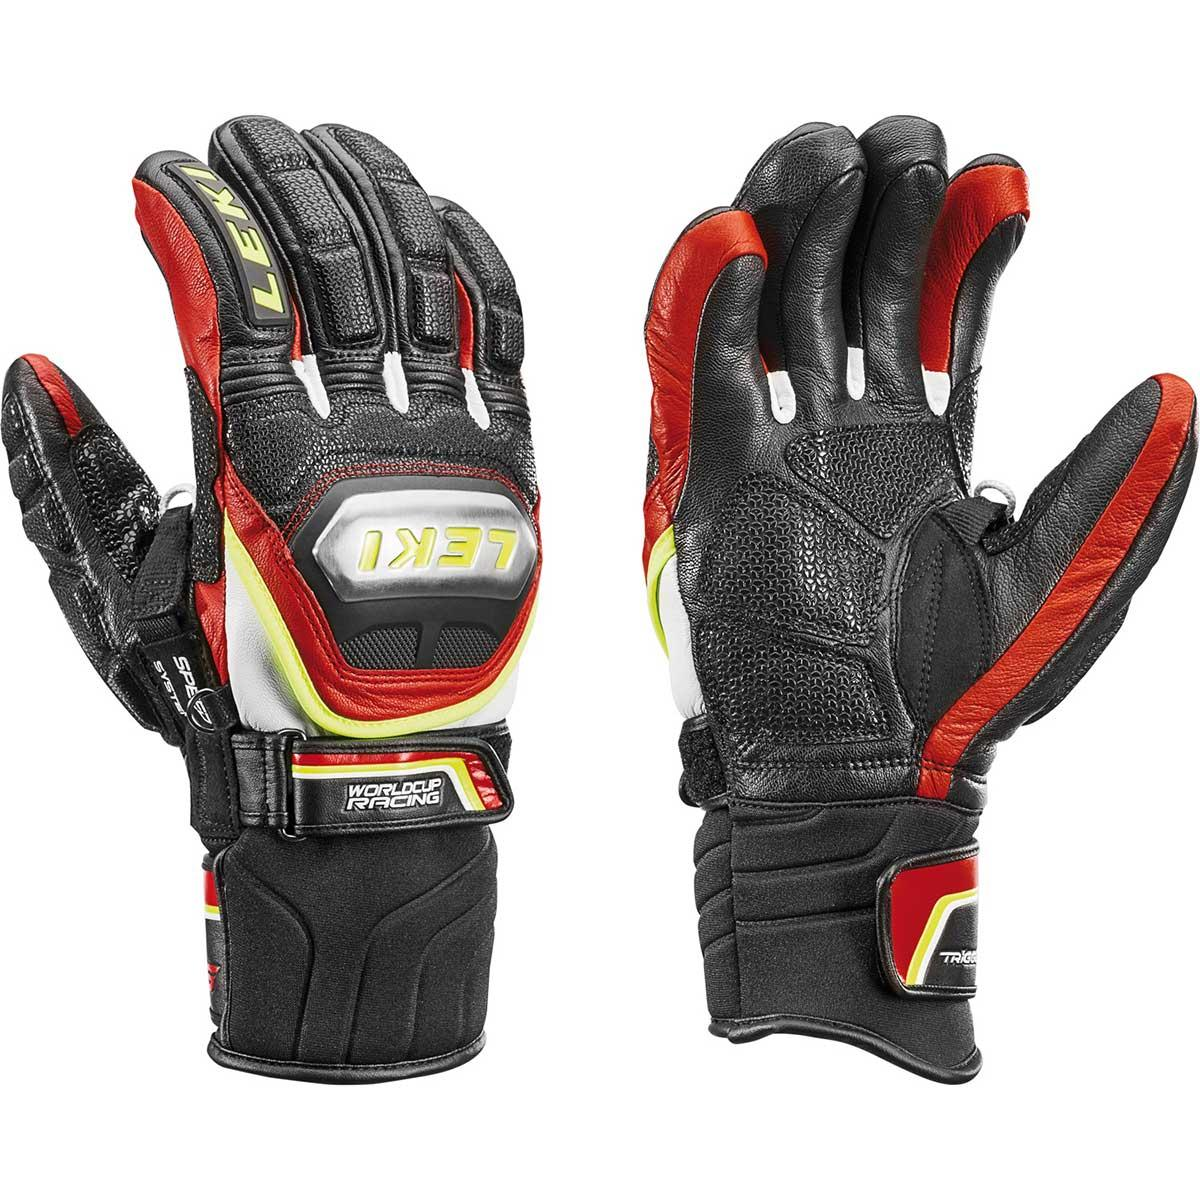 Leki Worldcup Racing Ti Speed System Glove in black and red and yellow